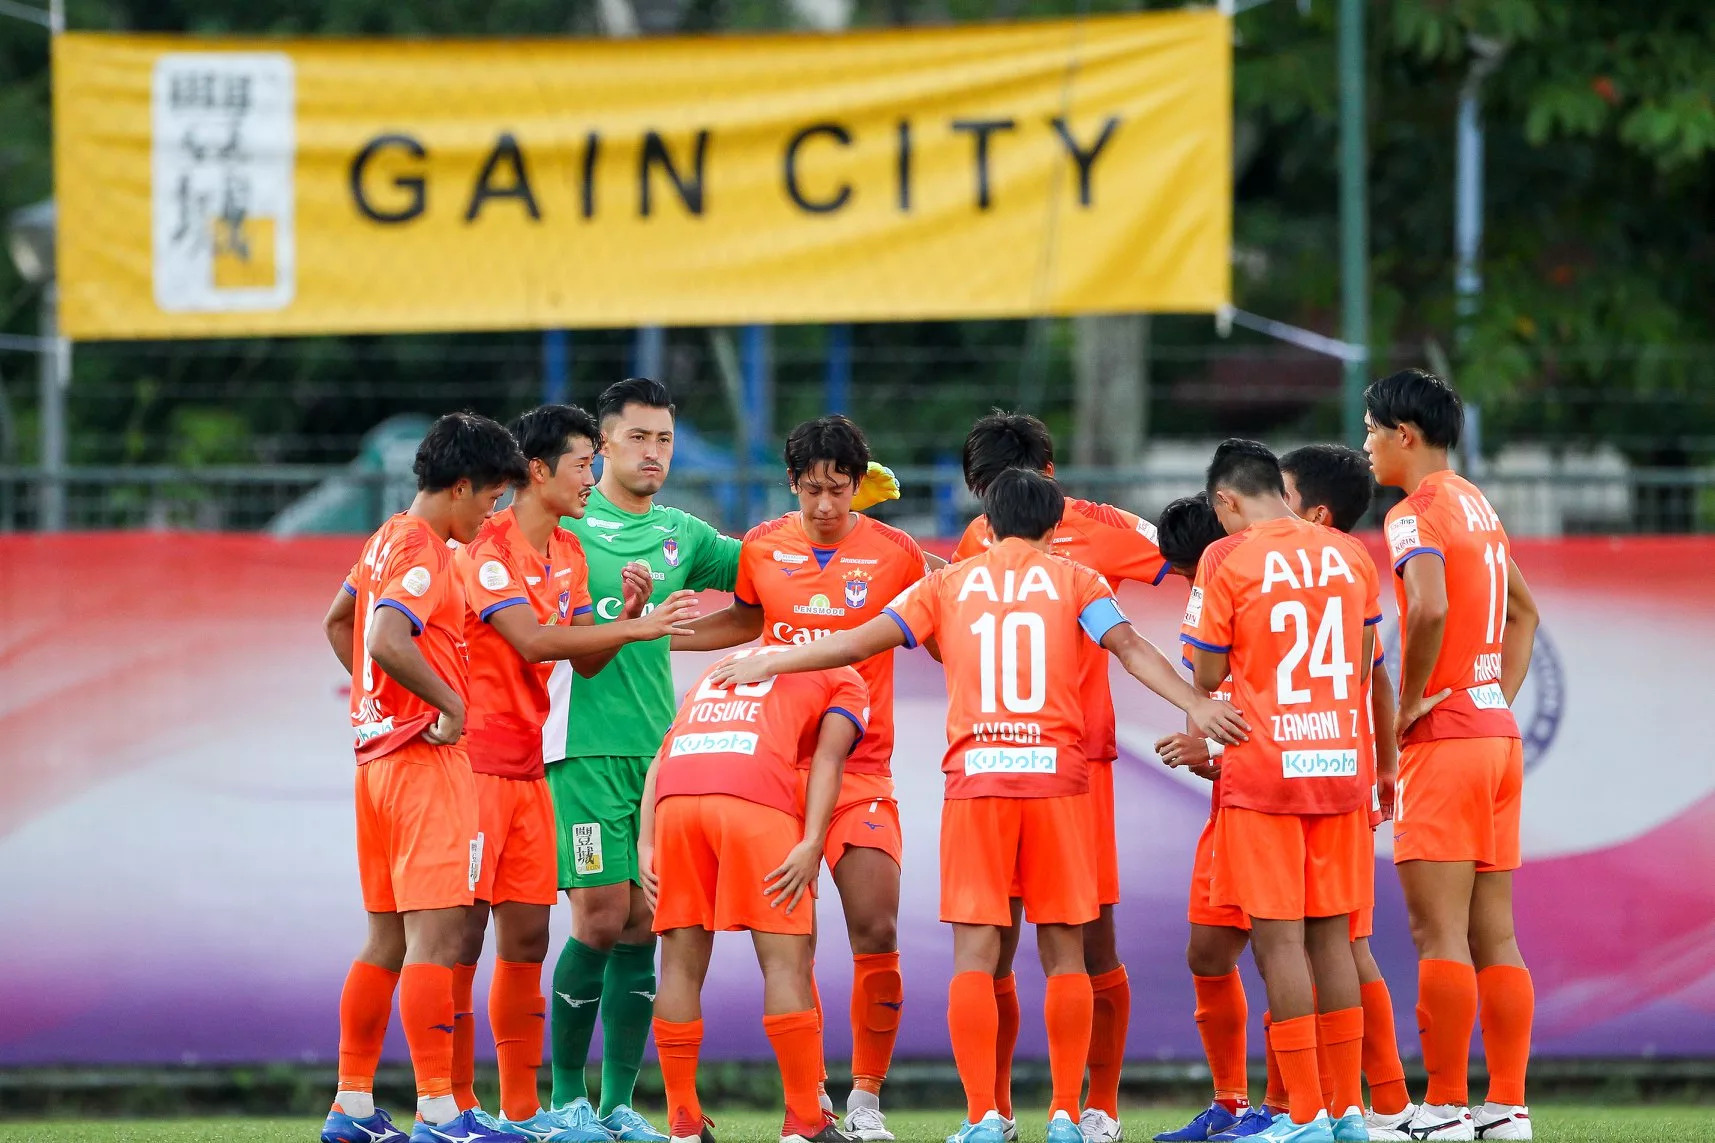 Albirex Niigata (S) continue to contribute off the field through Chiam See Tong Sports Fund